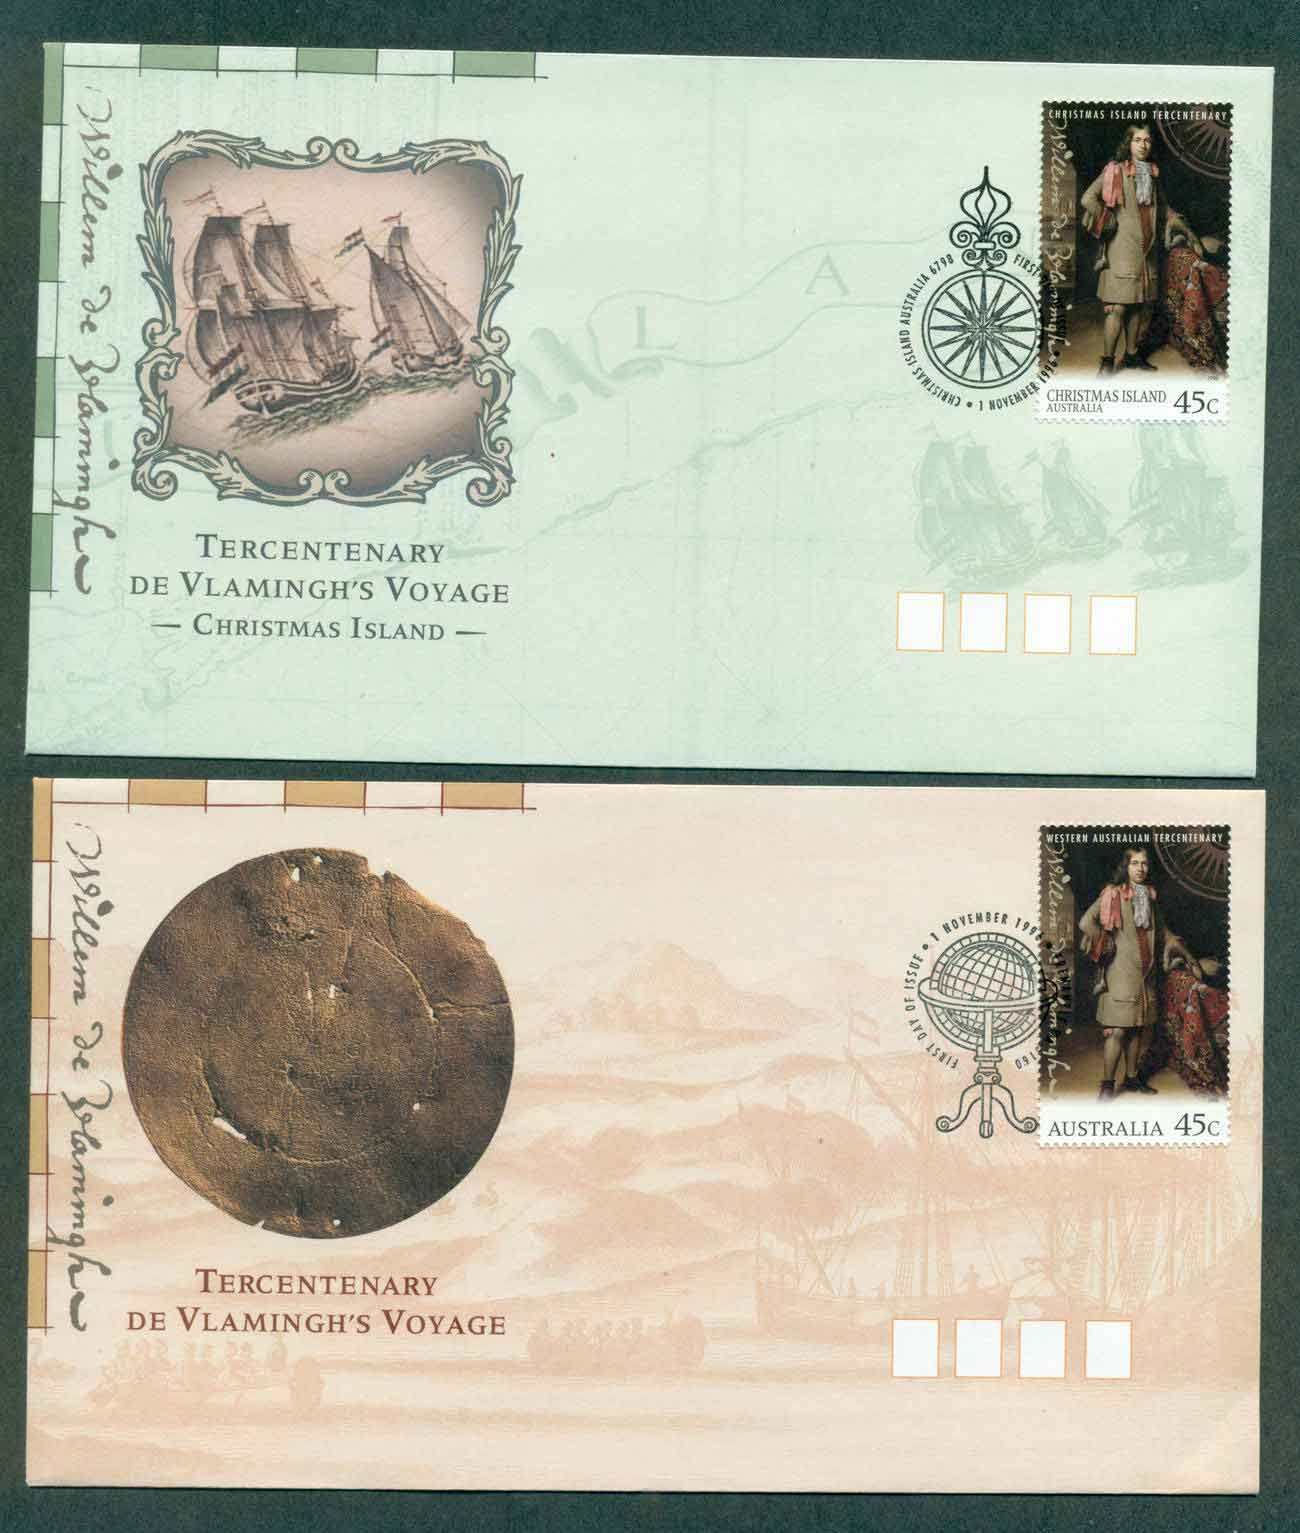 Australia 1996 de Vlamingh's Voyage, + Christmas Is 2xFDC lot51210